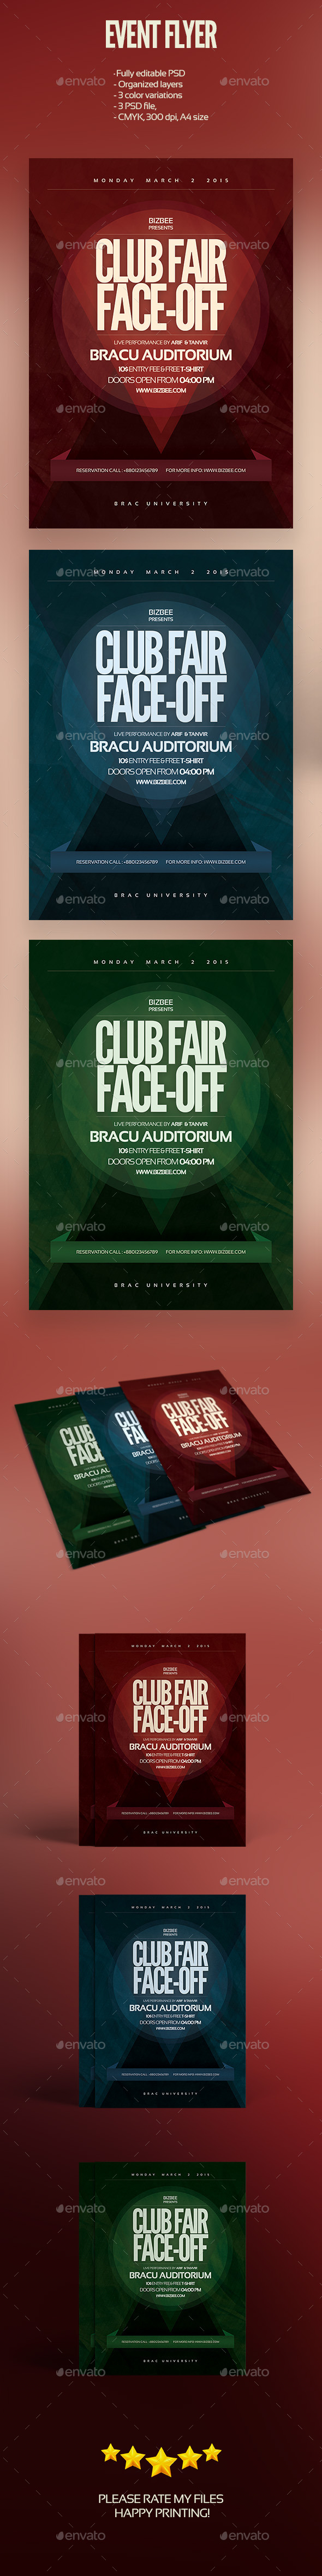 GraphicRiver Image-Free Event Flyer 10588130